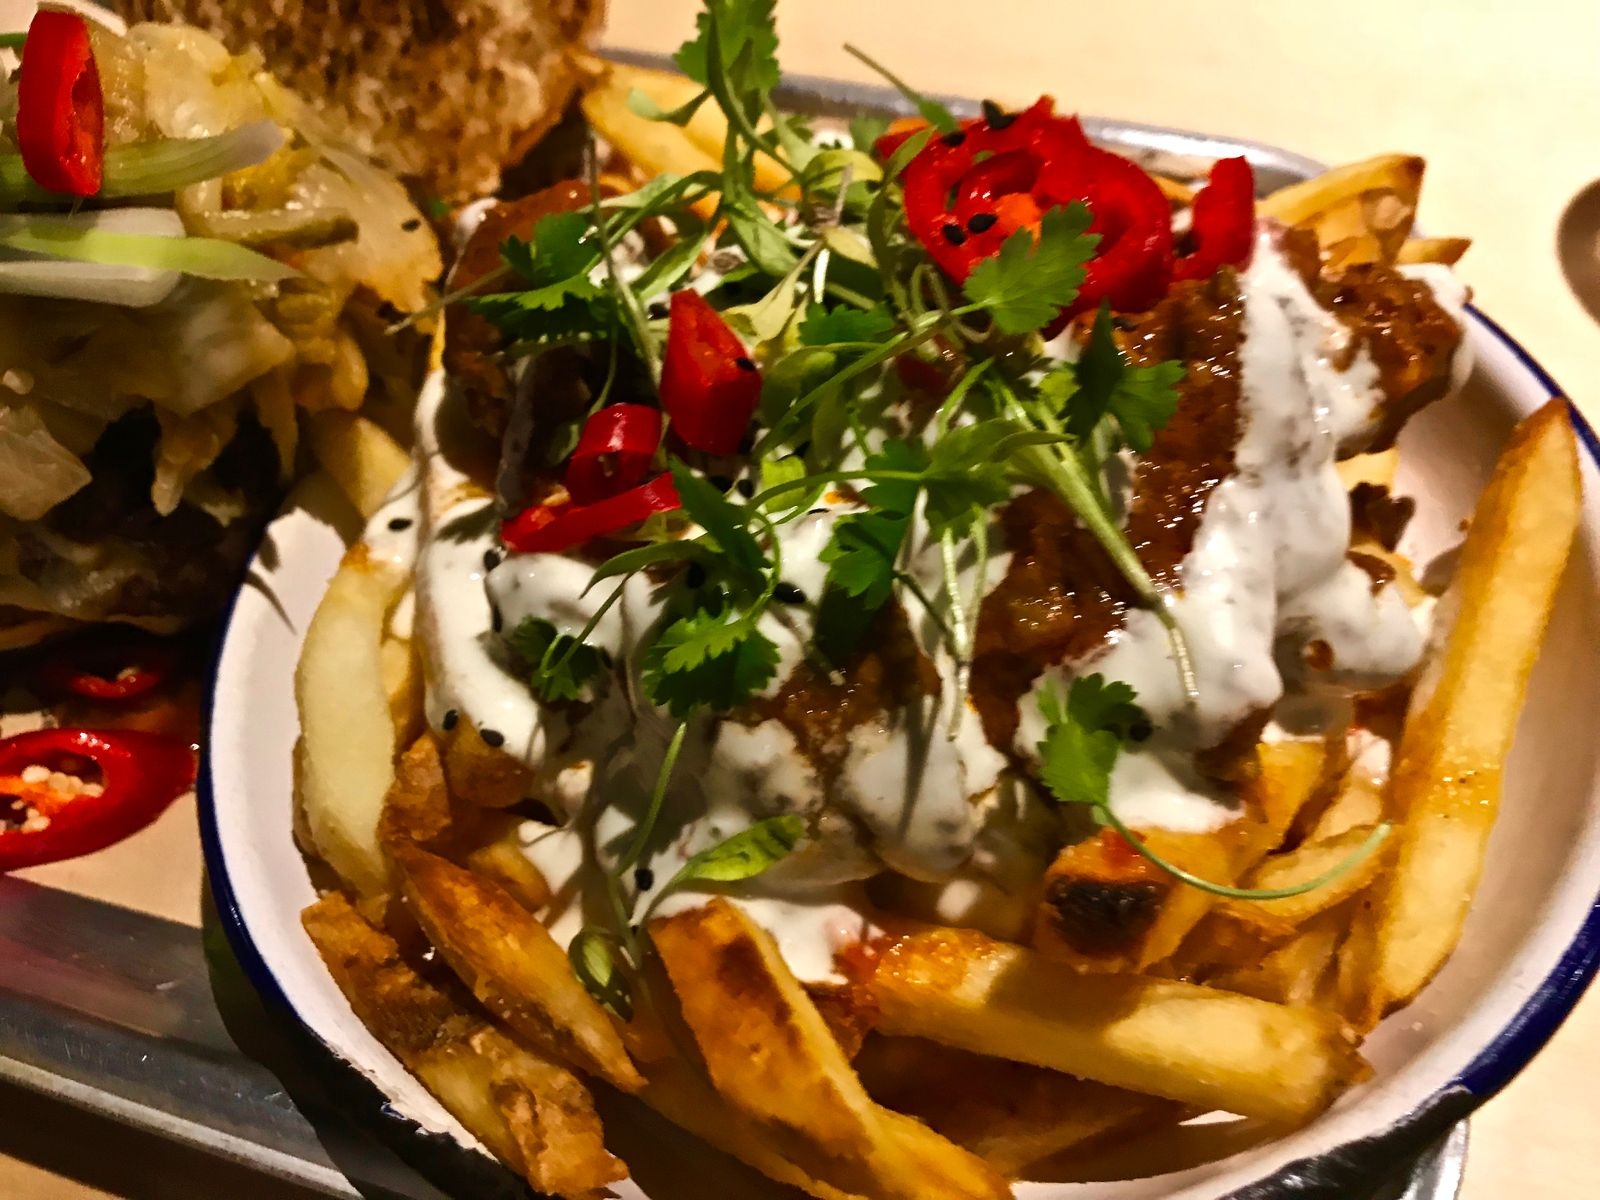 goat curry dirty fries at Burger Theory